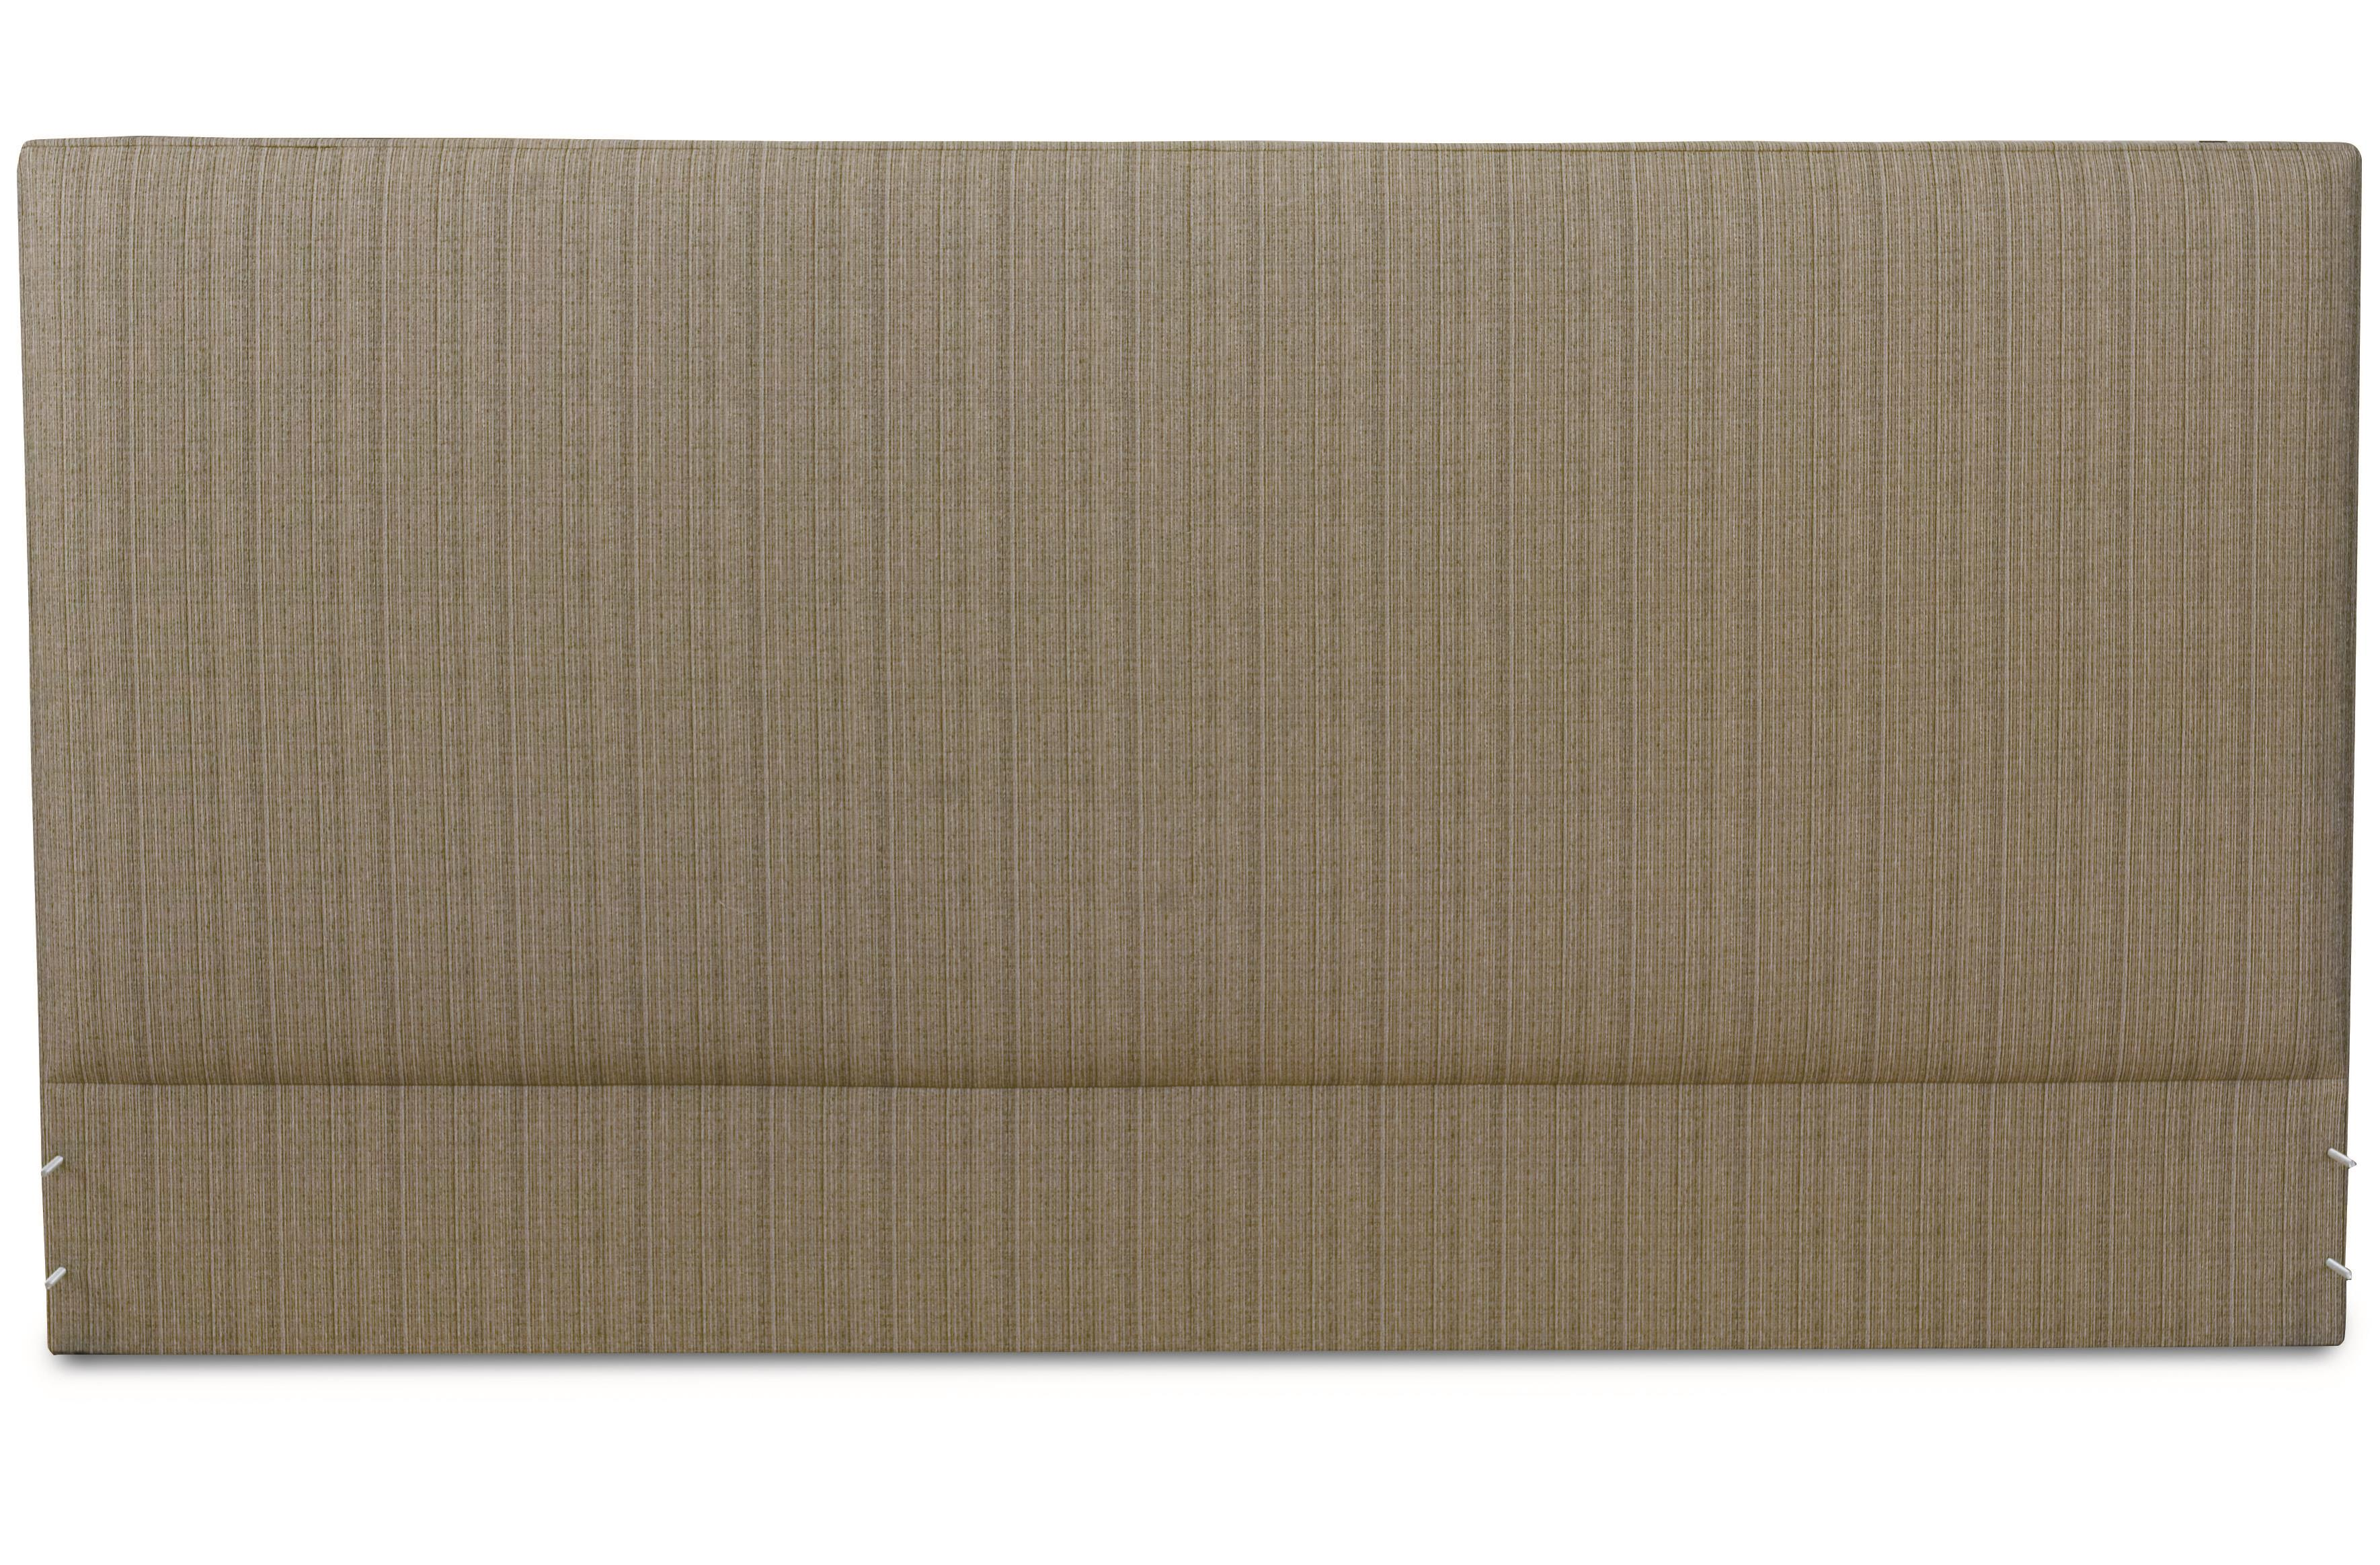 Interiors - Beds Queen Pryce Upholstered Headboard by Bernhardt at Baer's Furniture